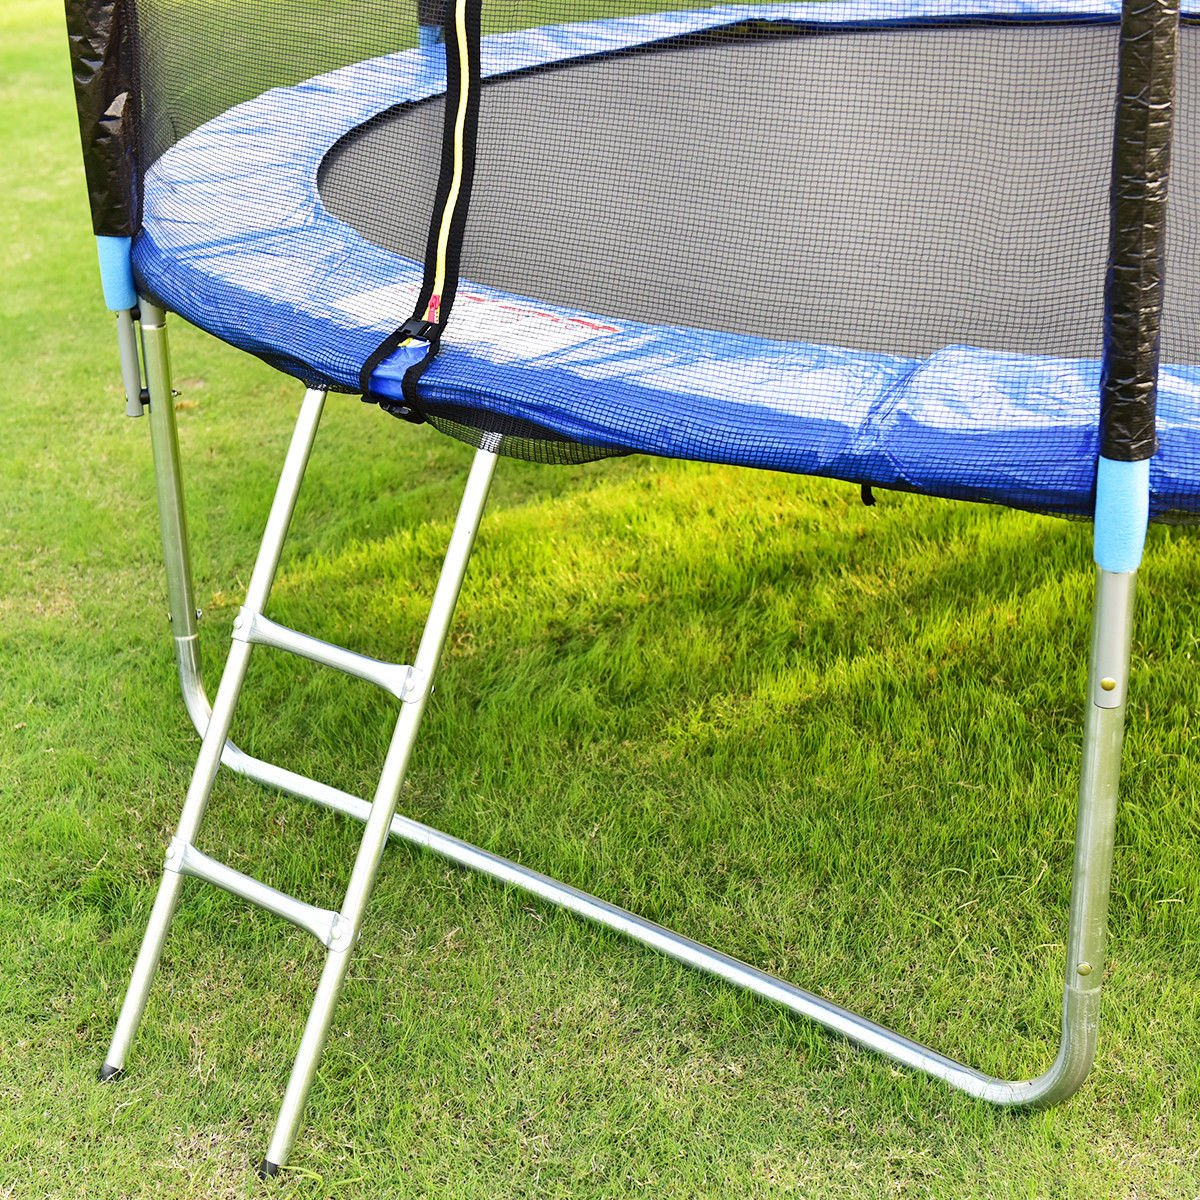 Giantex Trampoline Combo Bounce Jump Safety Enclosure Net W/Spring Pad Ladder (10 FT) by Giantex (Image #7)